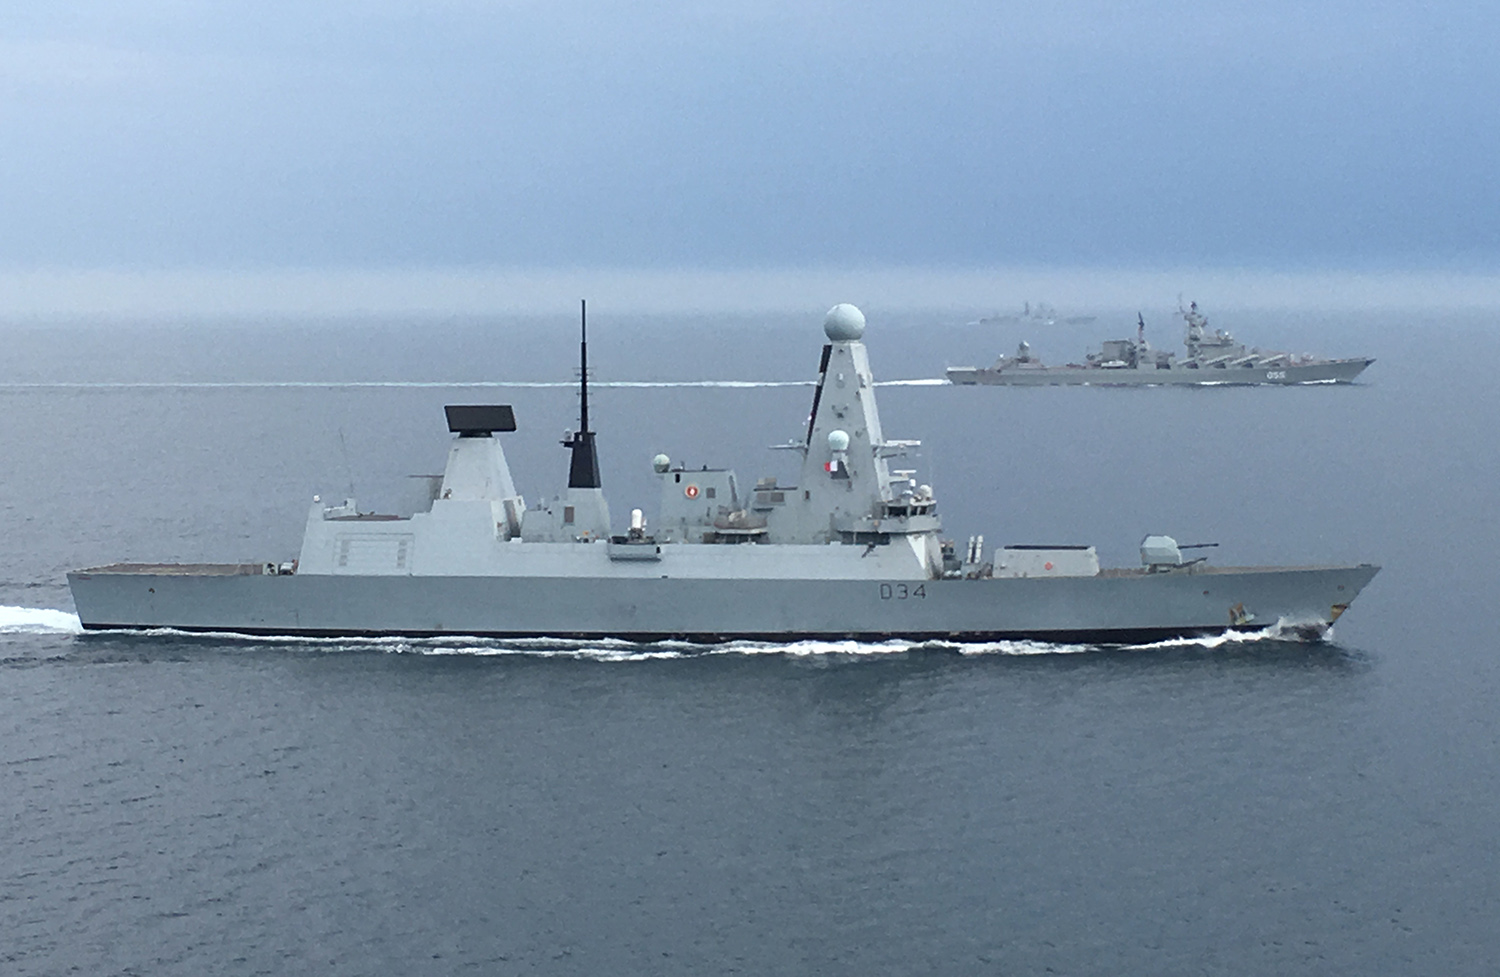 Royal Navy monitors Russian warships in English Channel